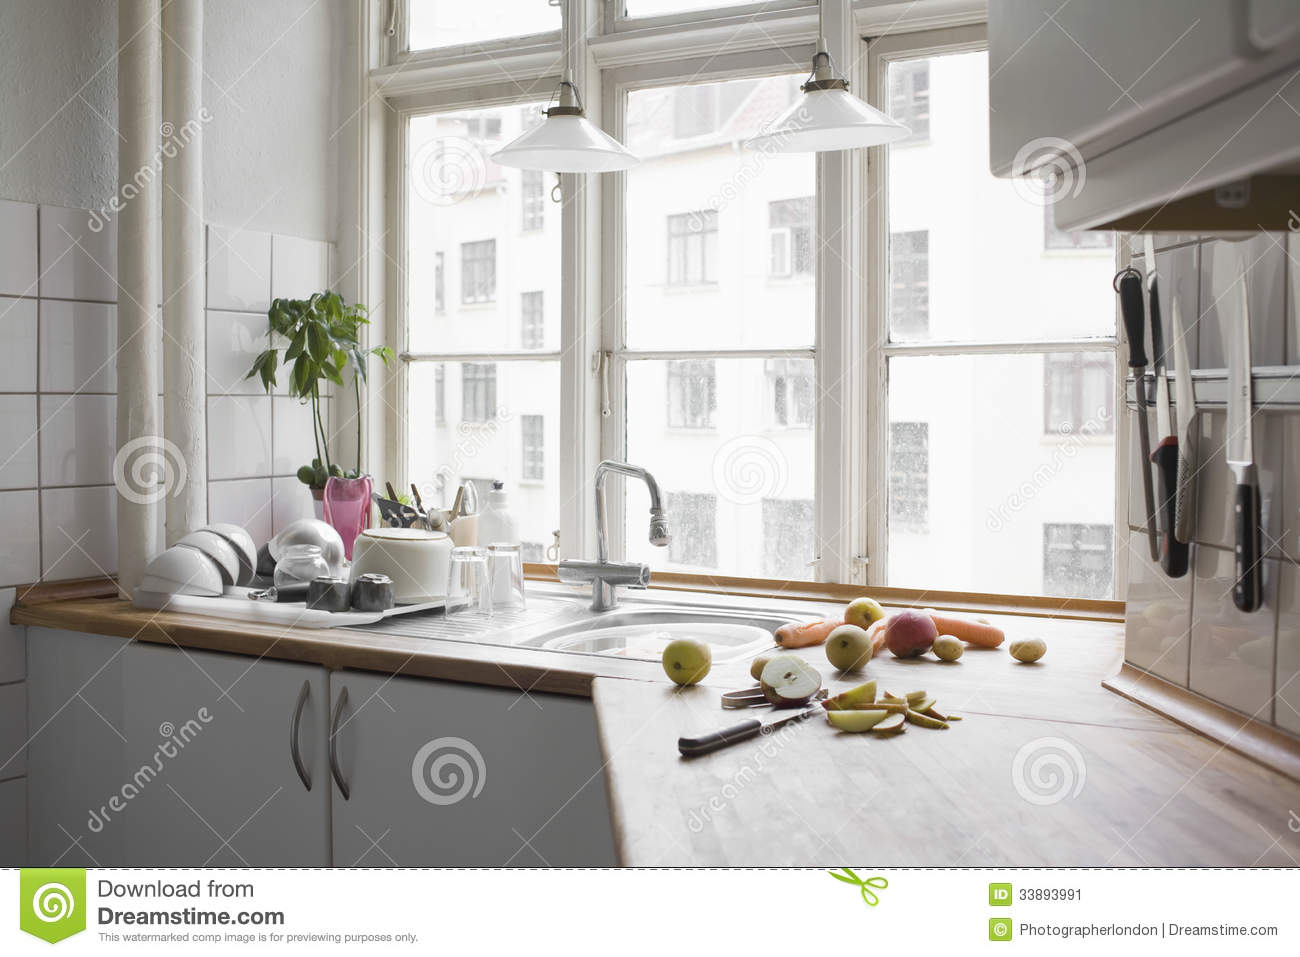 Chopped Fruit And Vegetables At Kitchen Worktop Stock Image - Image ...